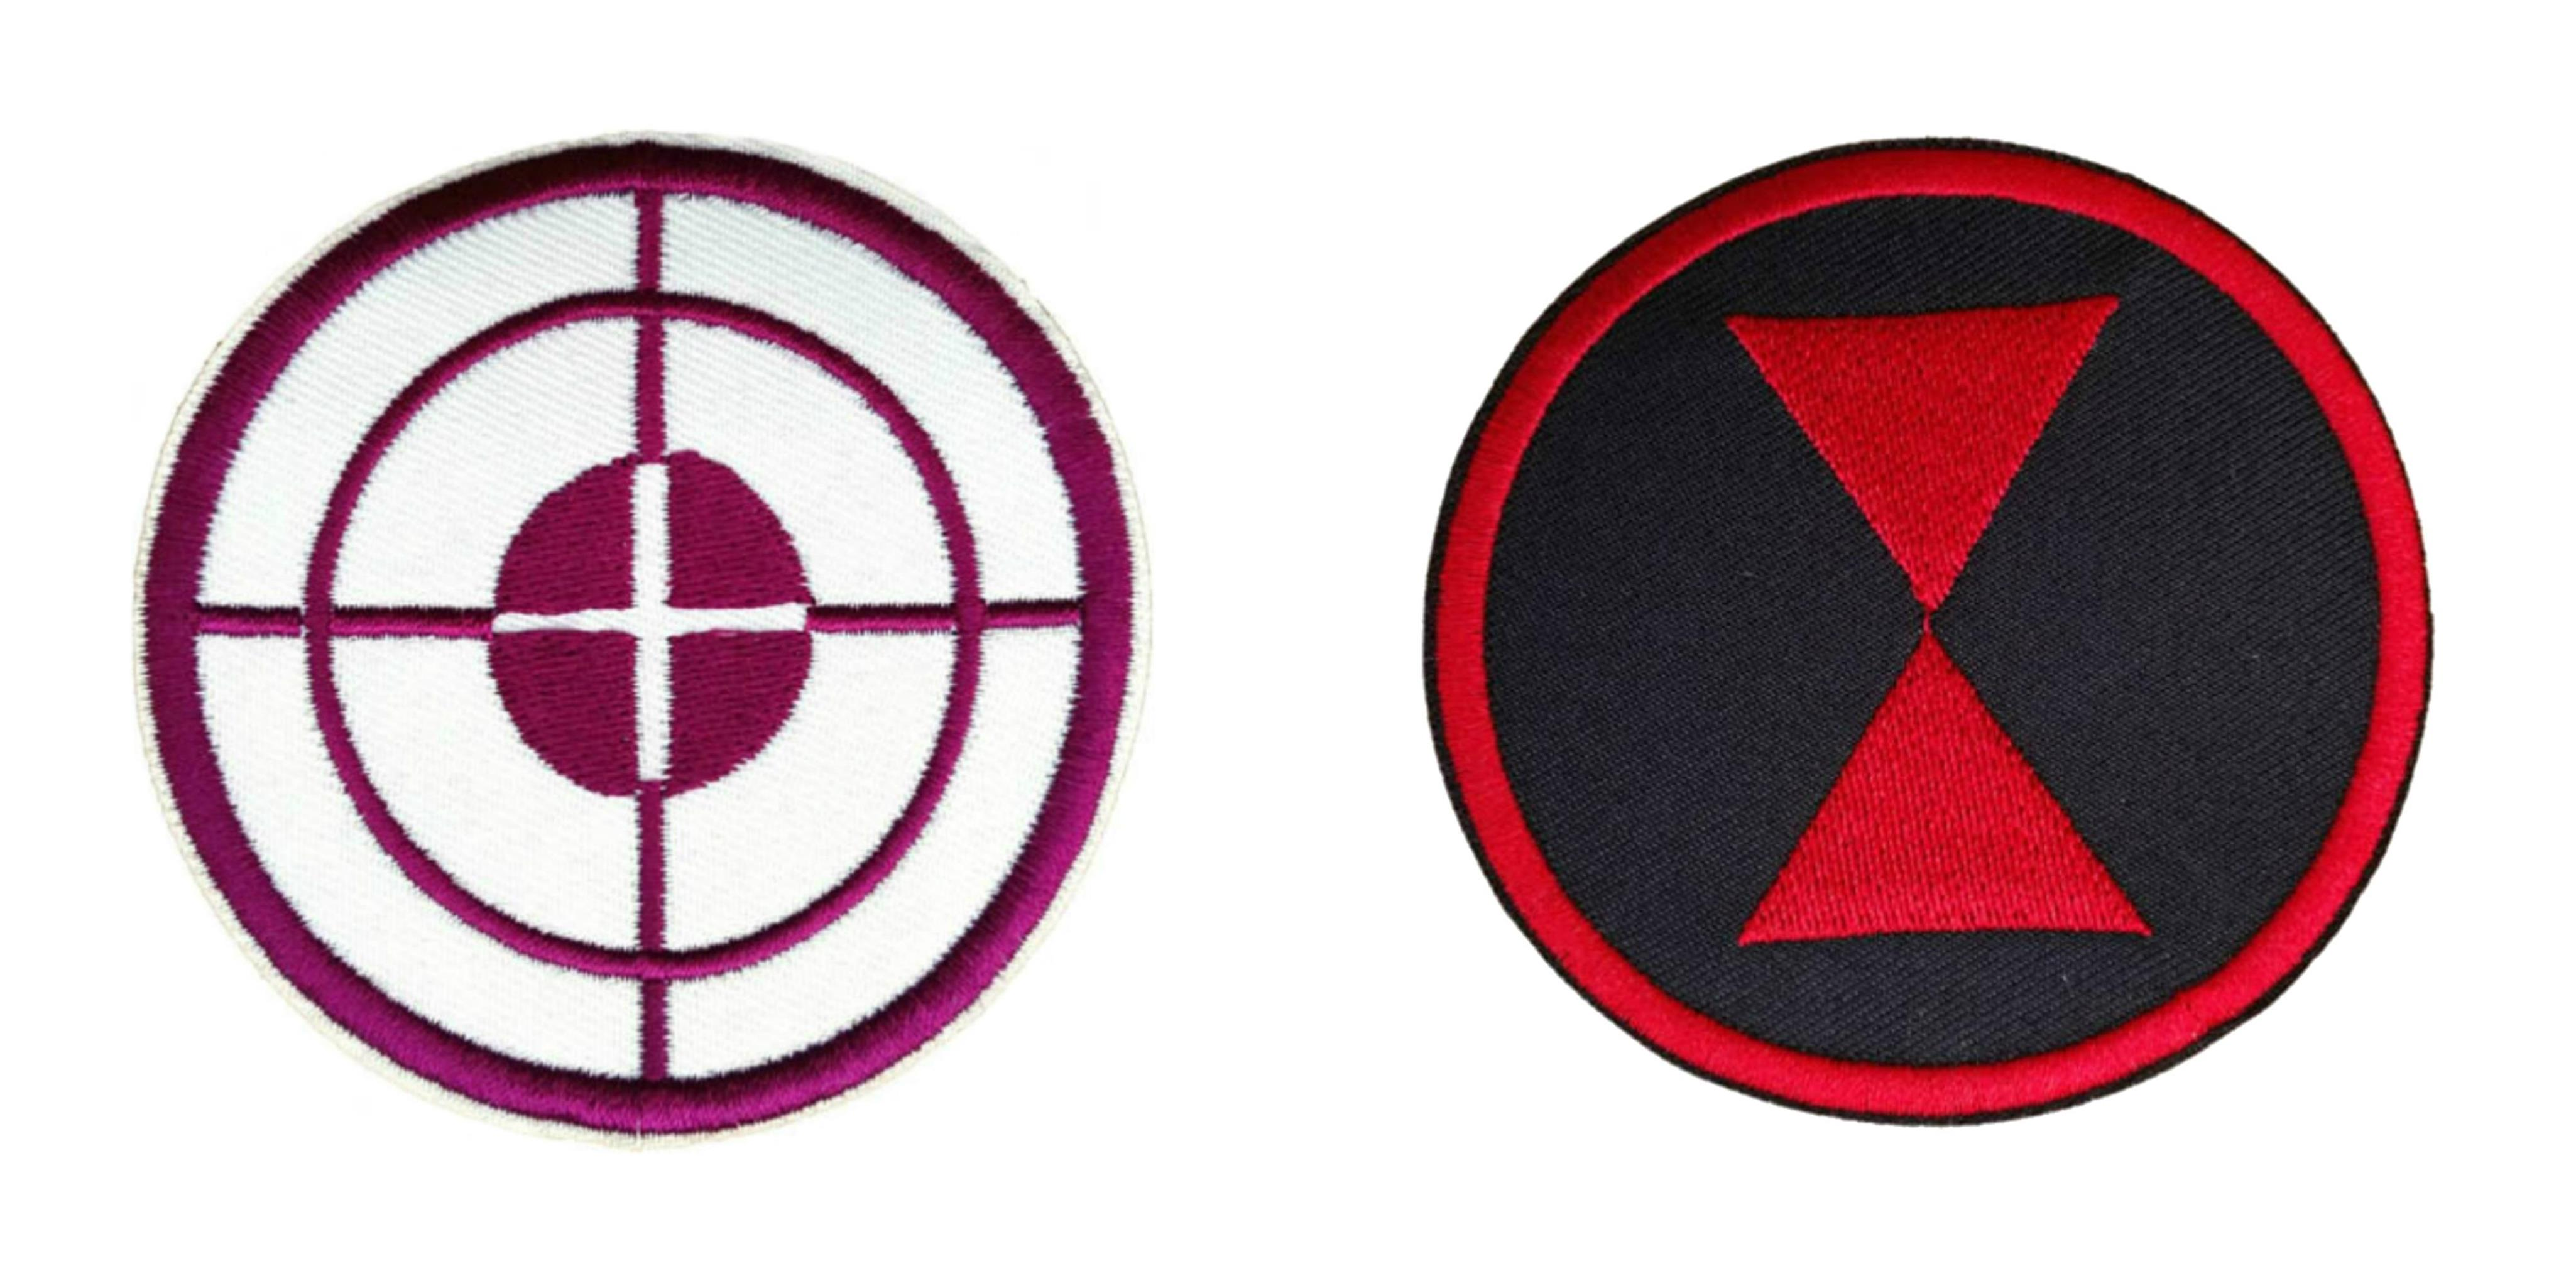 Superheroes Marvel Comics Avengers Hawkeye And Black Widow Logo 3 2 Pack Embroidered Iron Sew On Applique Patches Walmart Com Walmart Com